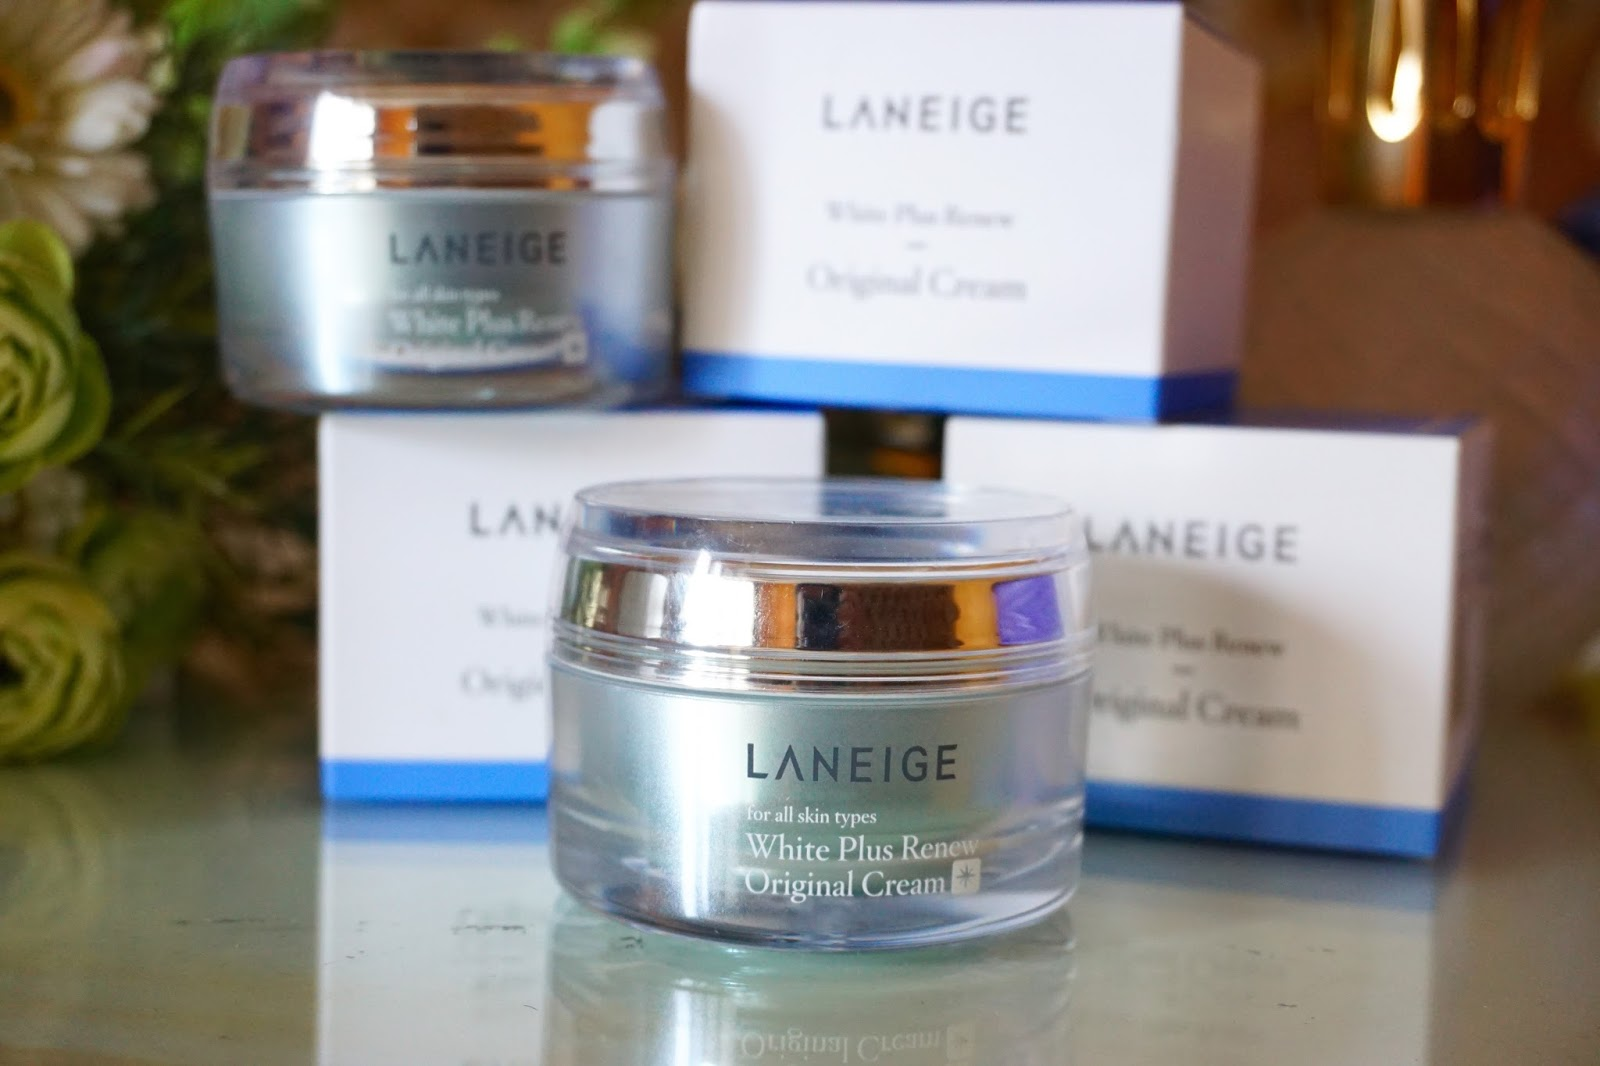 White Plus Renew Eye Cream by Laneige #10